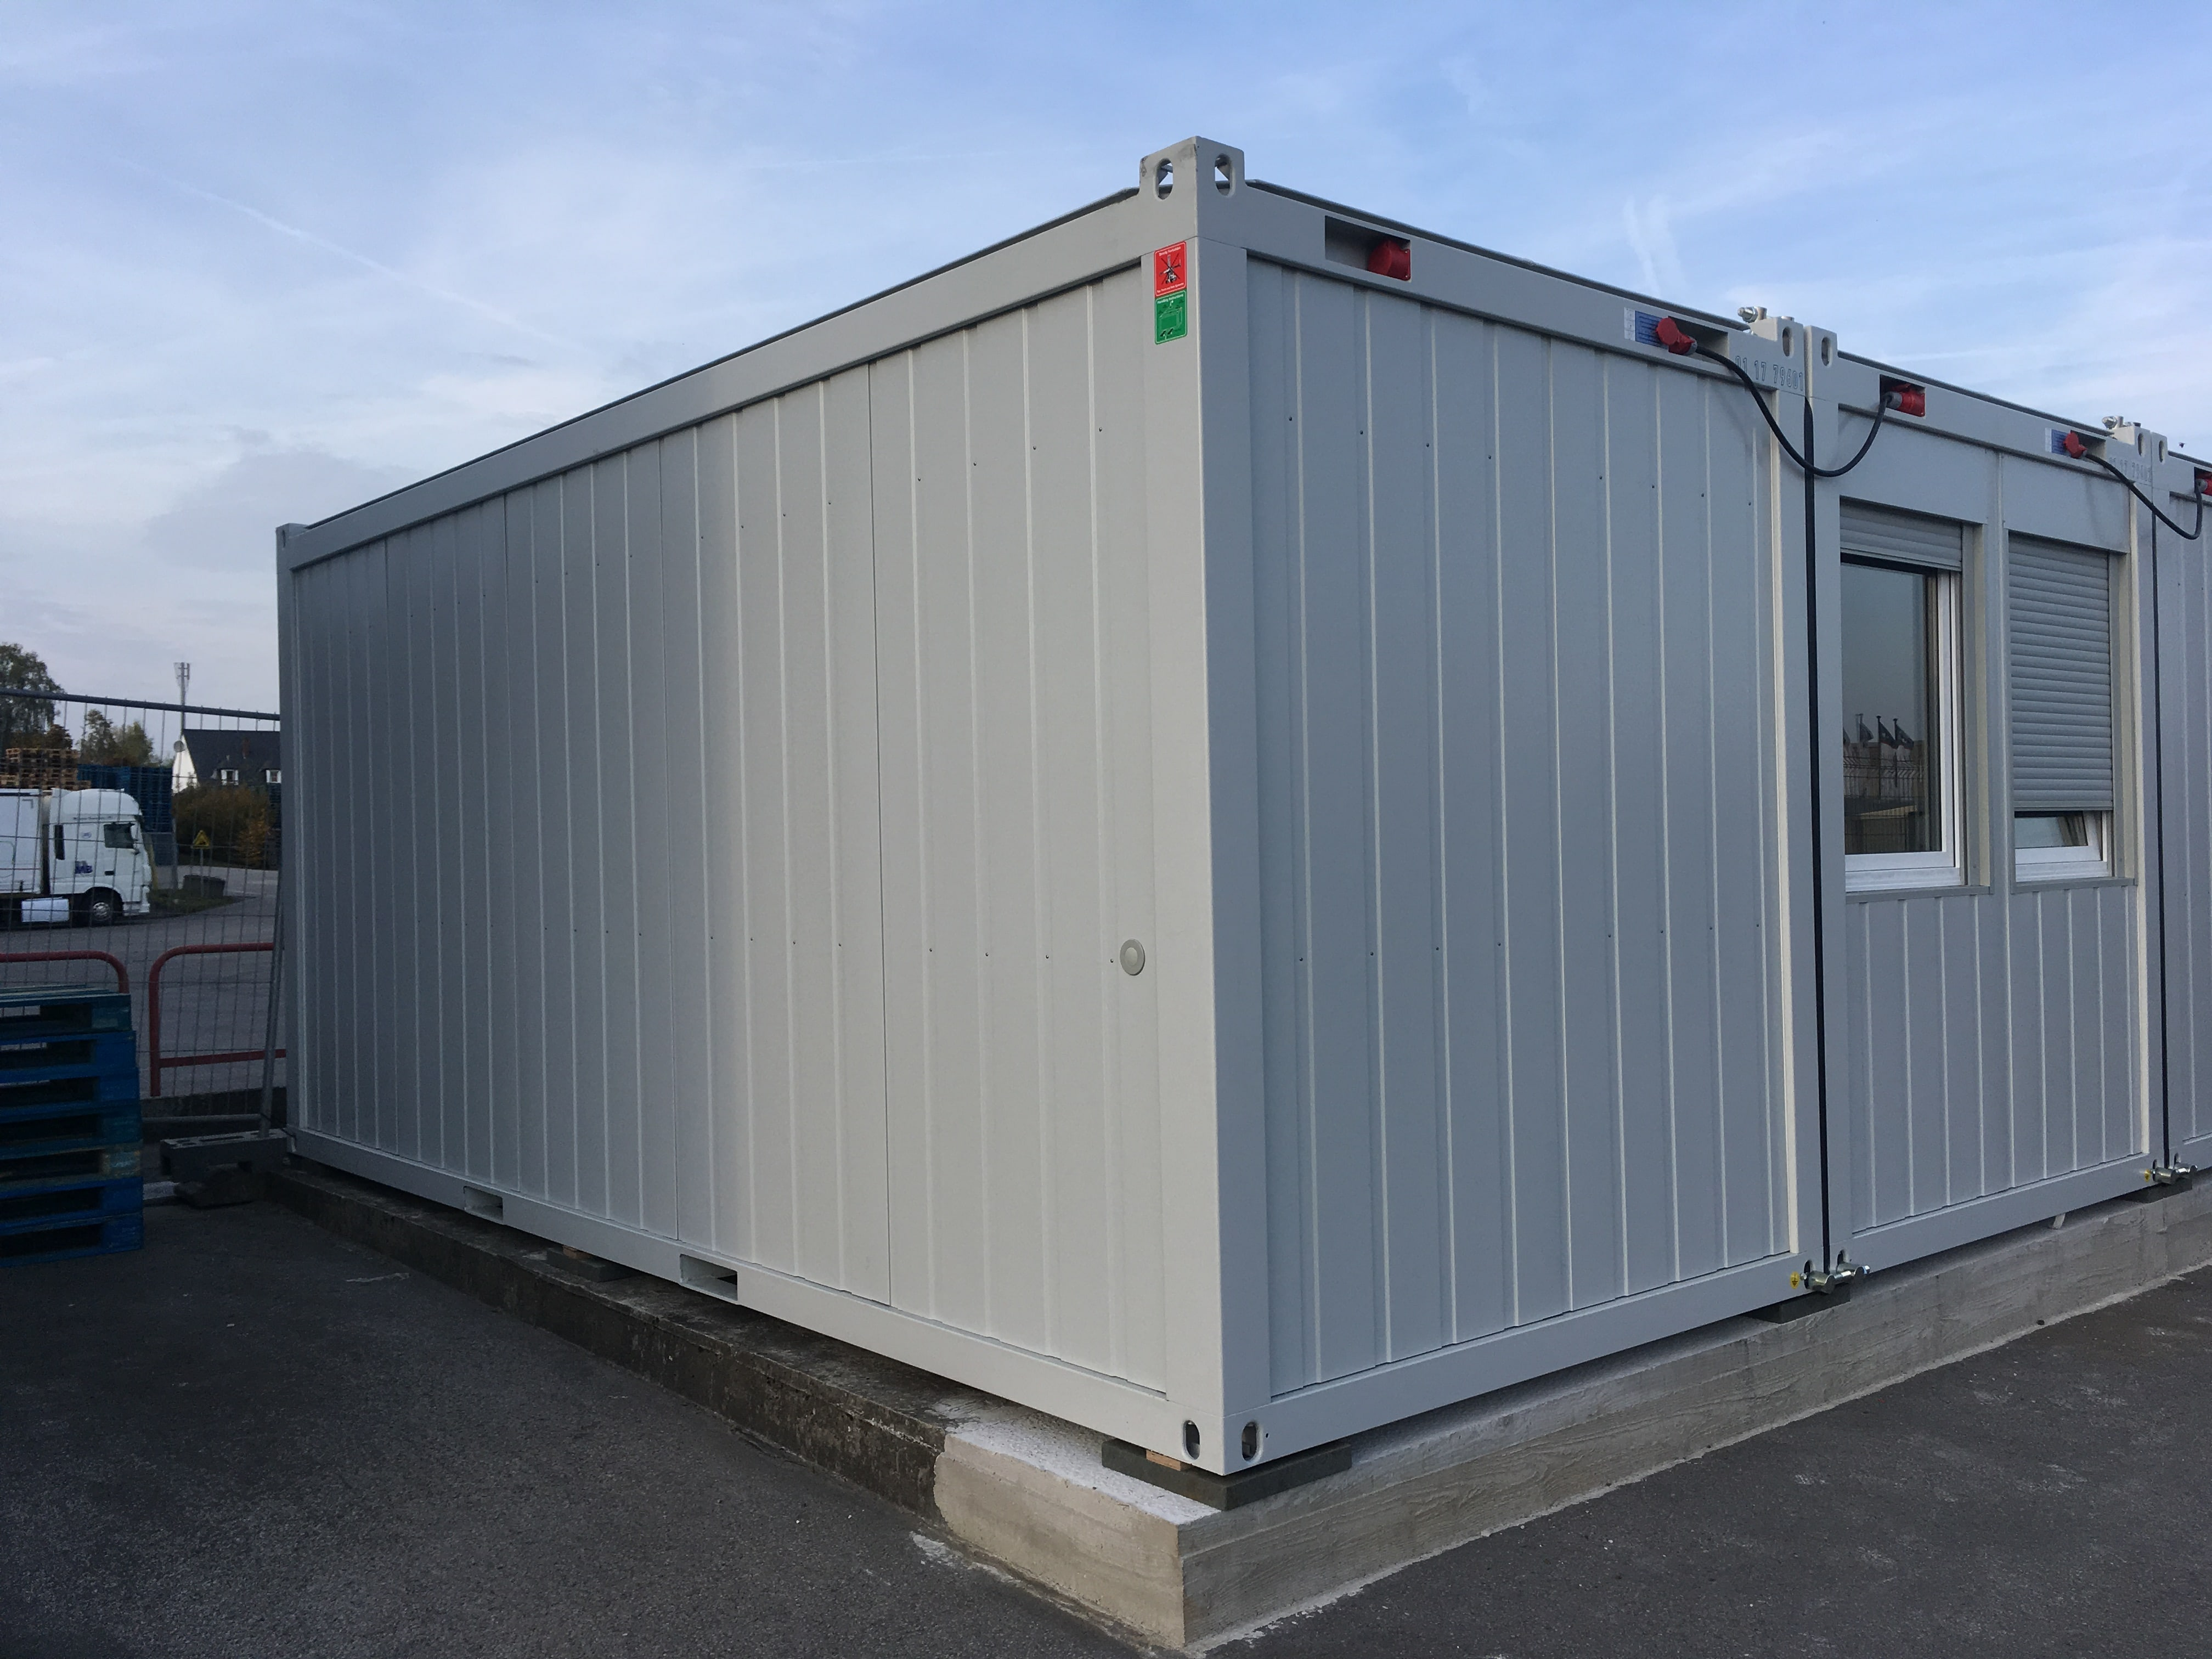 Mouvbox france conteneur container dry neuf bureau stockage